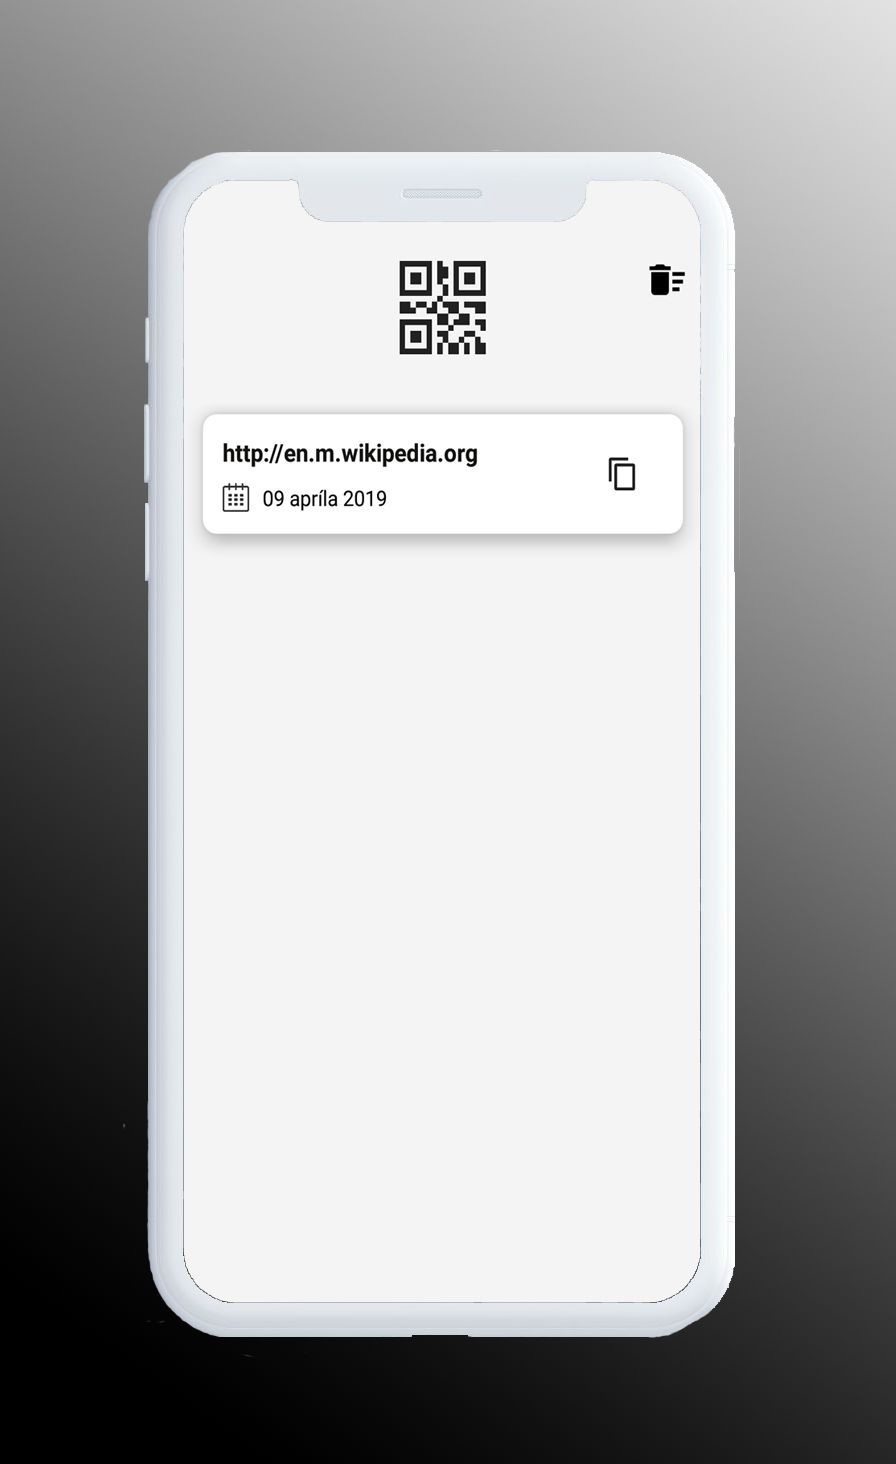 QR Scanner - Simple And Minimal Android App Screenshot 3